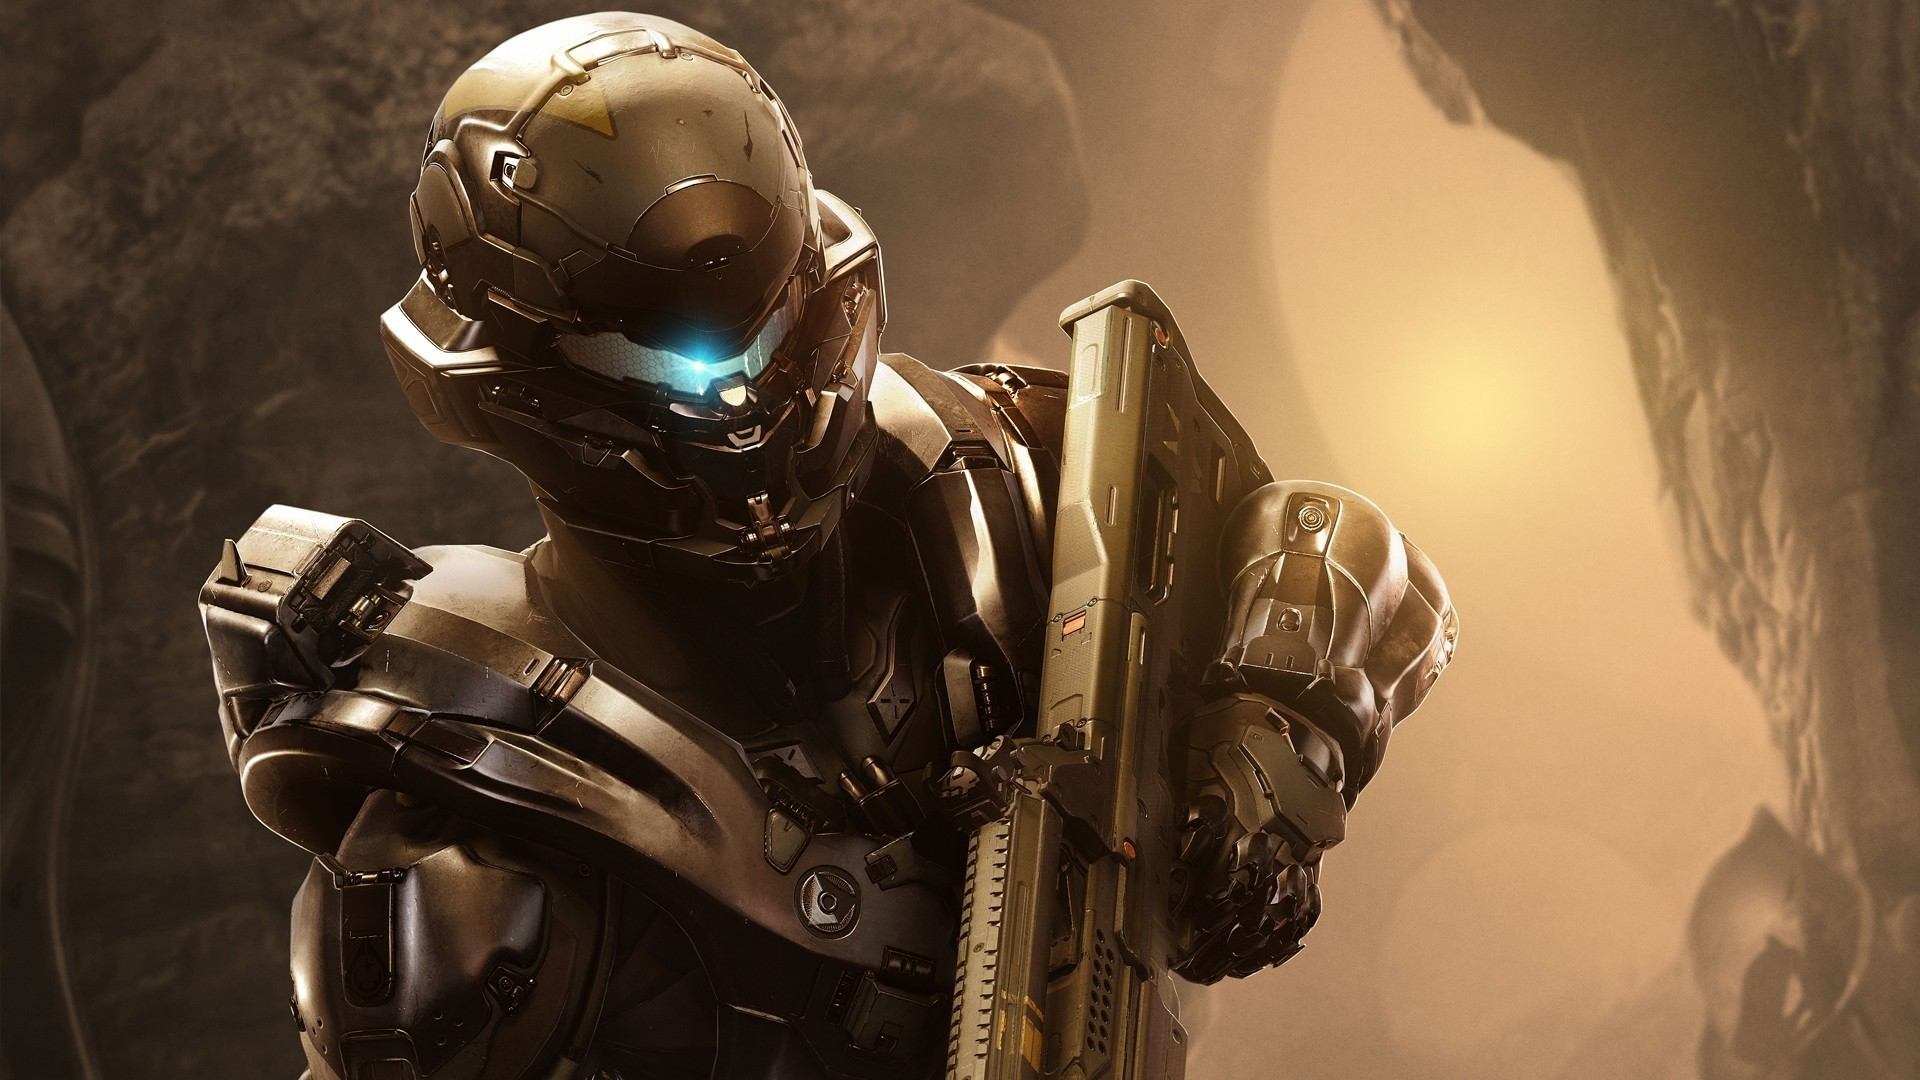 Halo 5, Video Games, Spartans, Armor, Weapon, Spartan Locke Wallpapers HD /  Desktop and Mobile Backgrounds